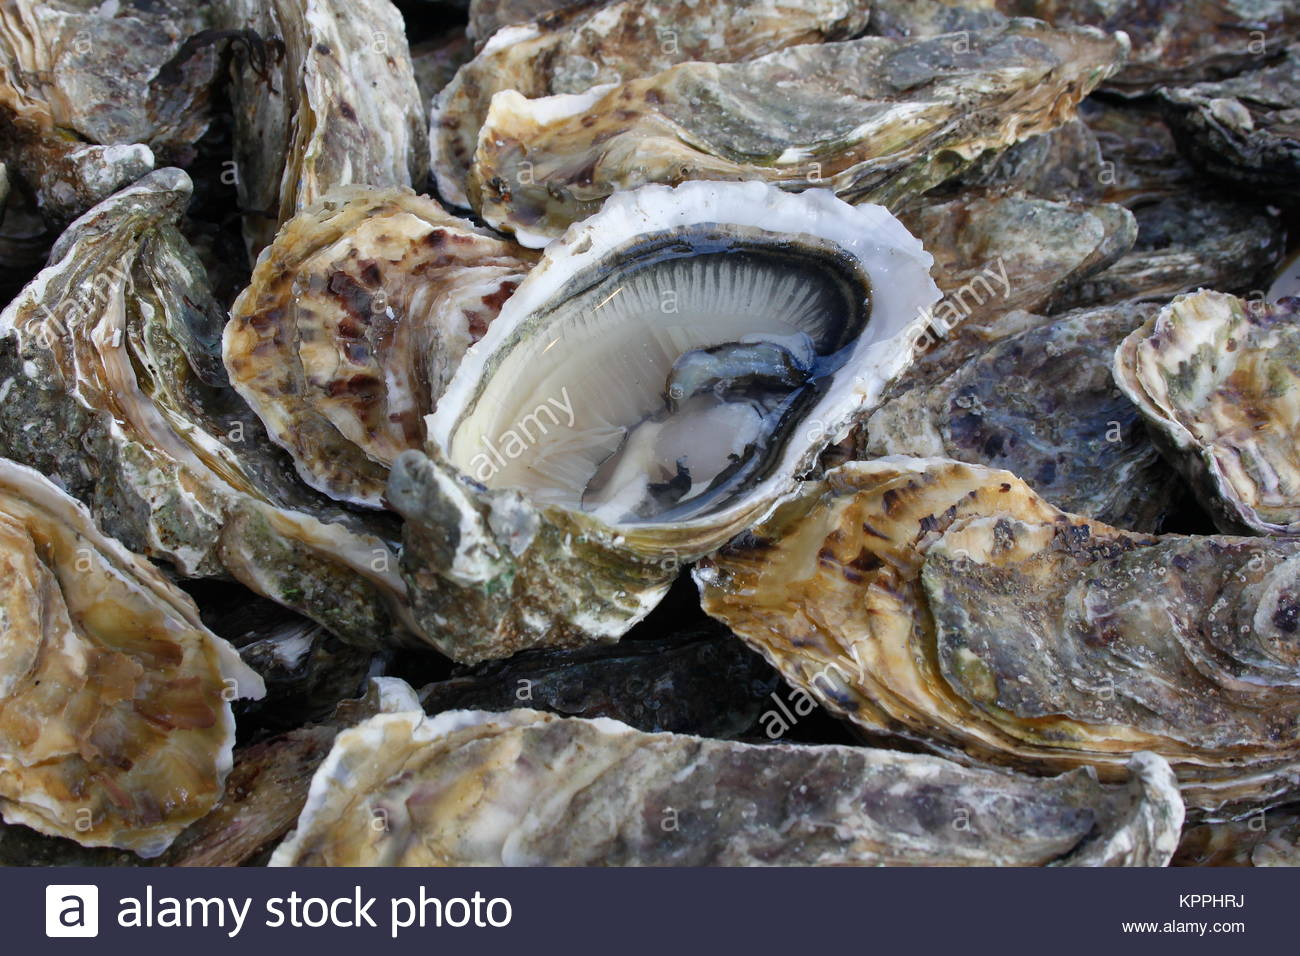 European Flat Oyster Stock Photos & European Flat Oyster ... - photo#40